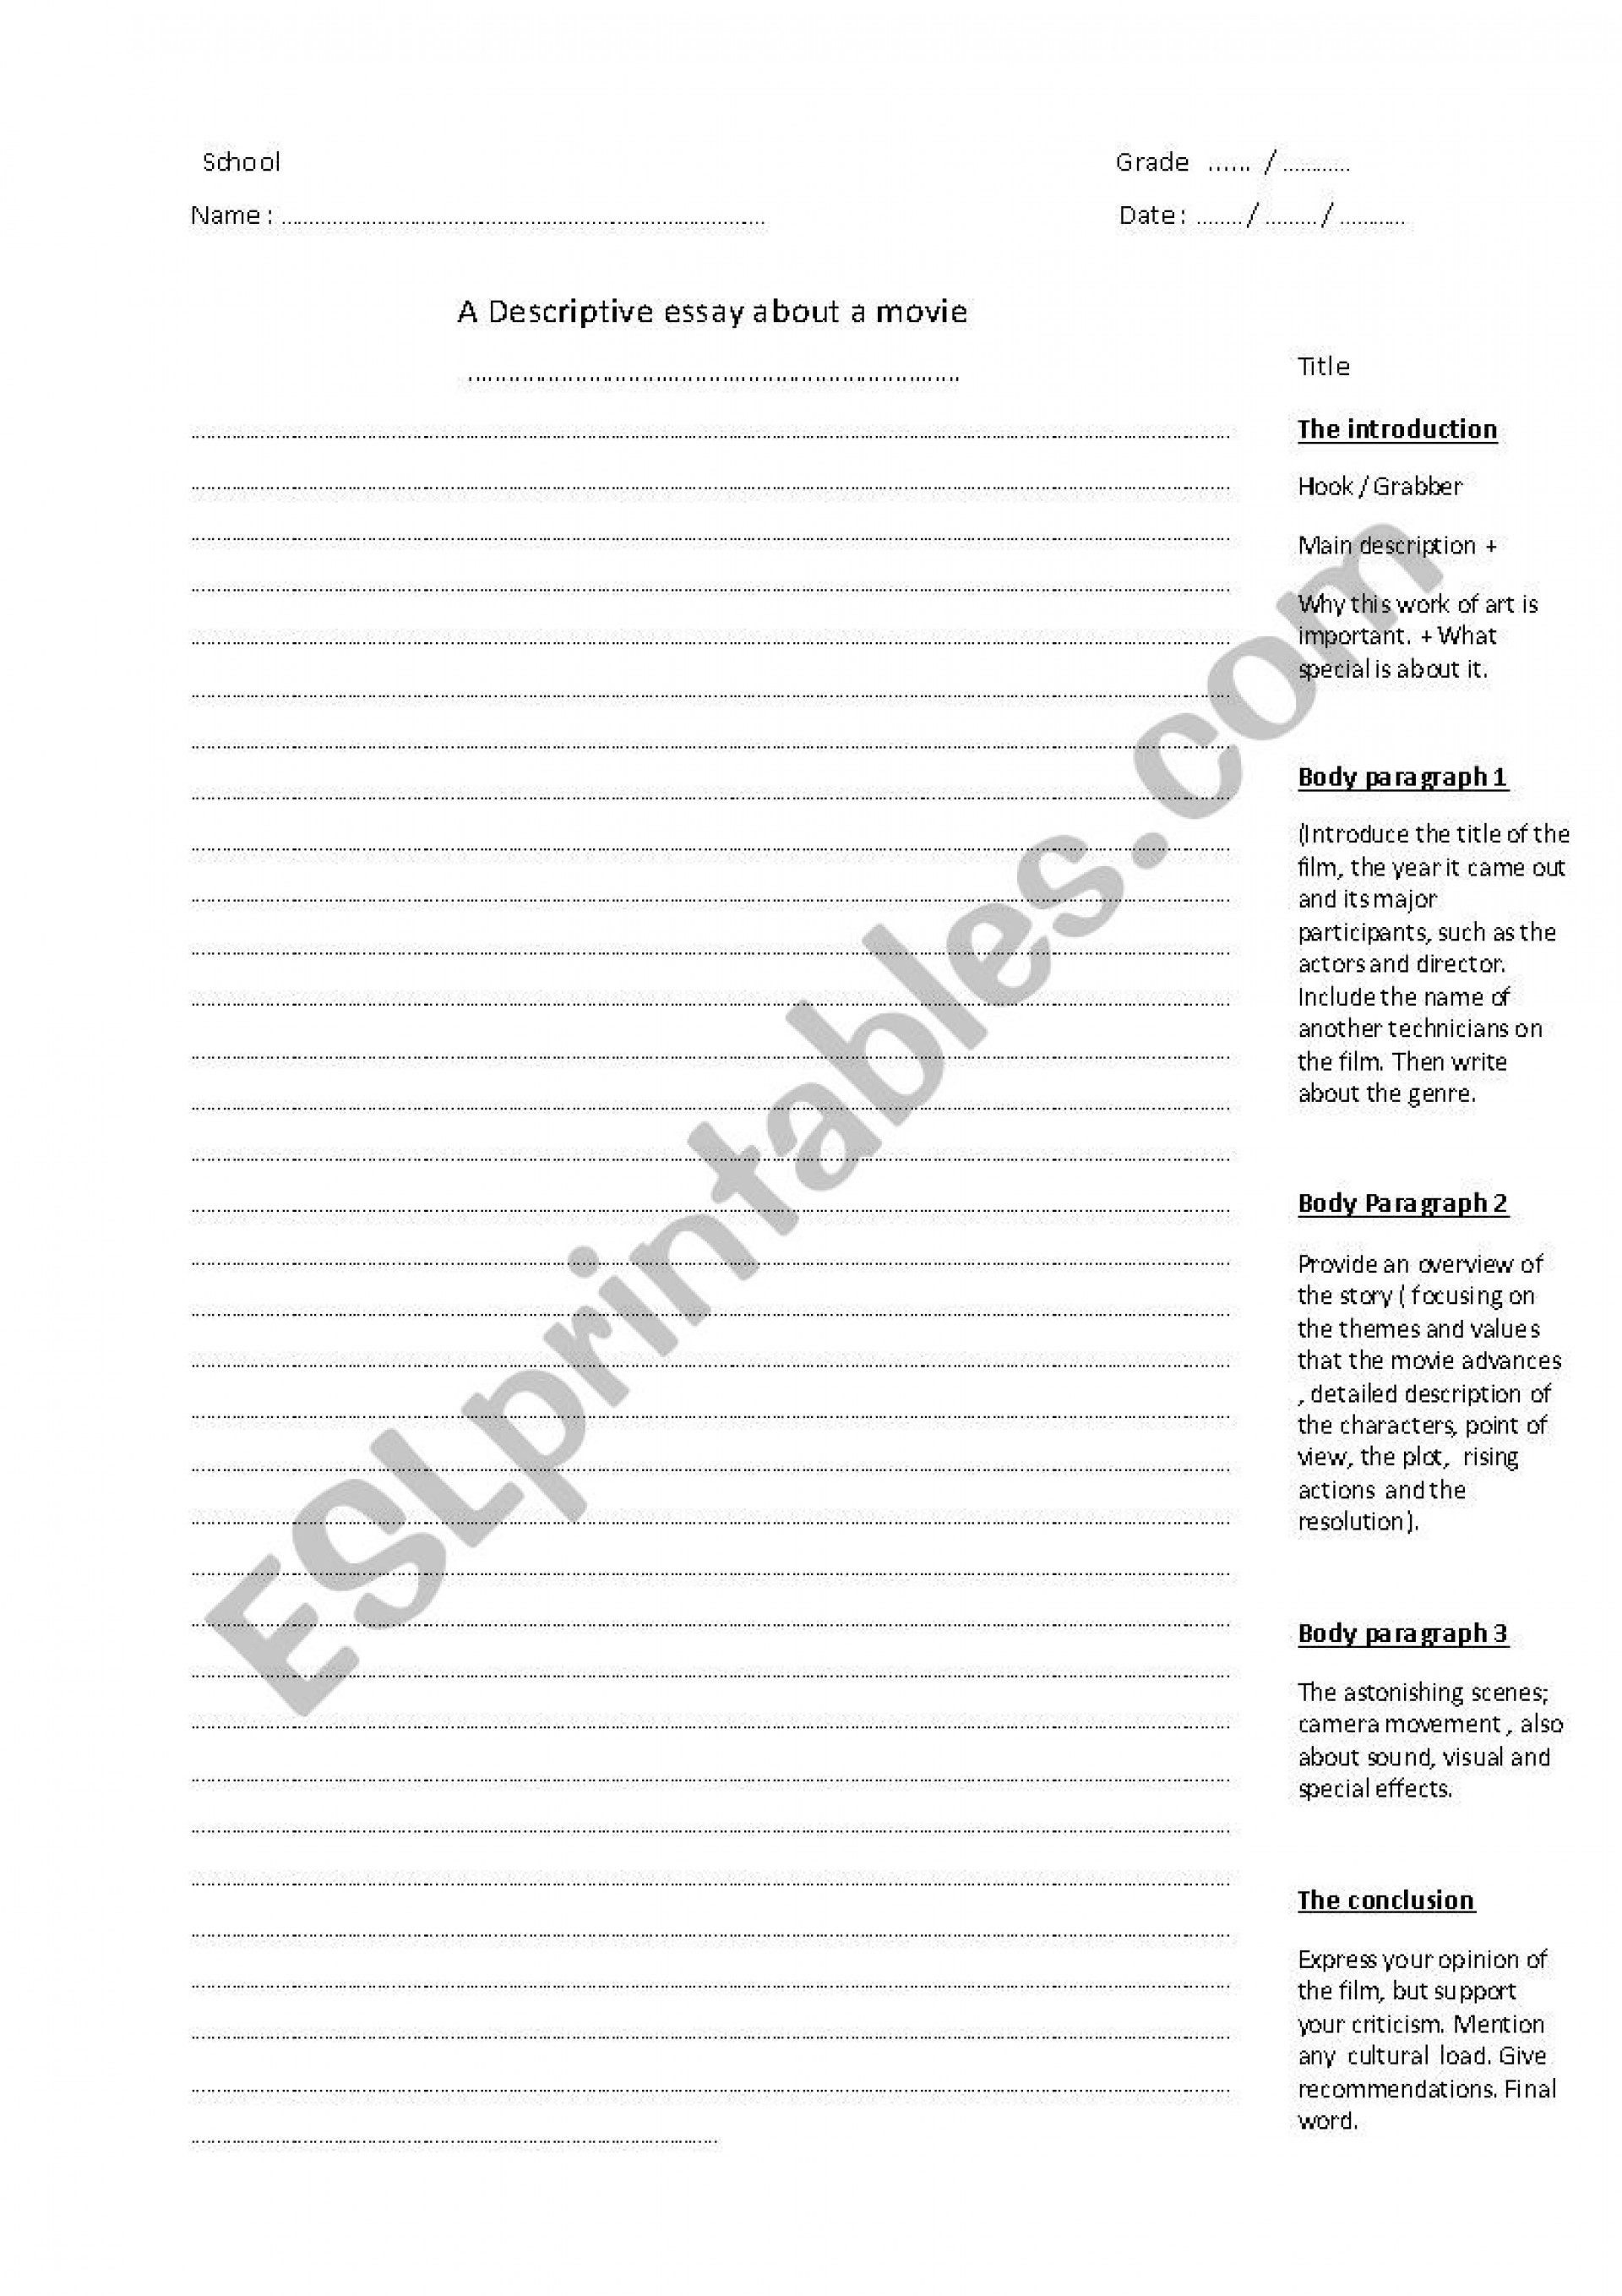 018 869976 1 Essay Format For Writing A Descriptive Imposing Spm Pdf 1920